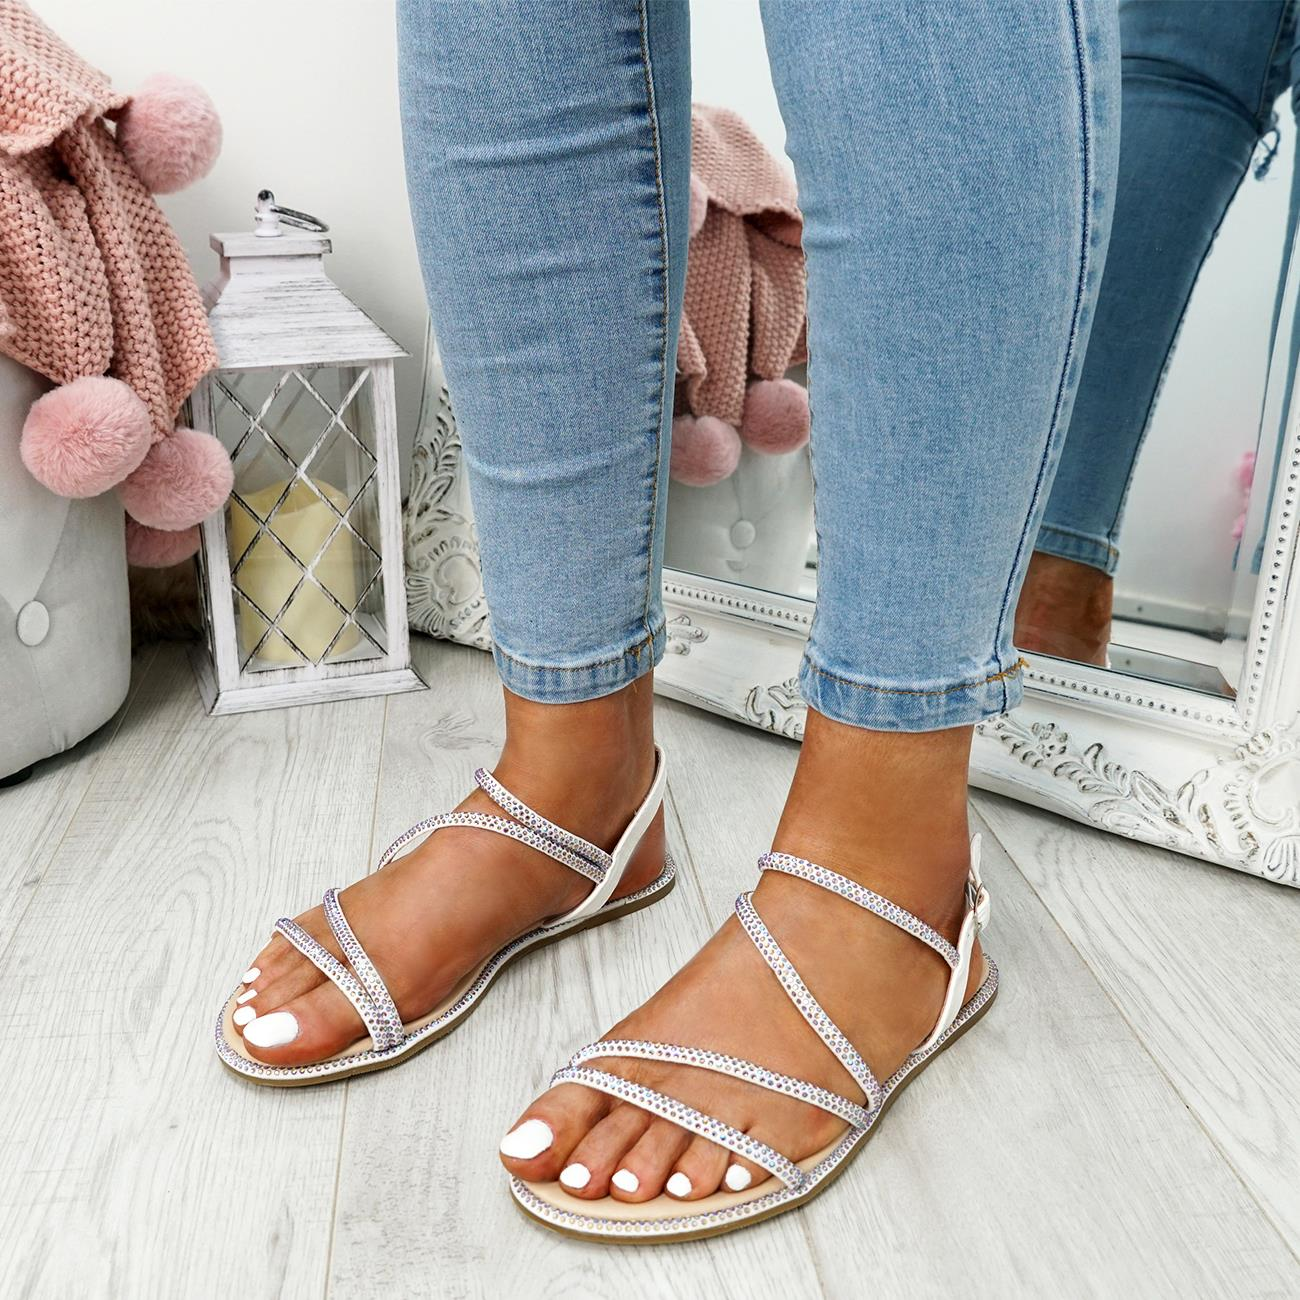 WOMENS-LADIES-STUDDED-ANKLE-STRAP-FLAT-SHOES-PARTY-CLUB-SANDALS-SHOES-SIZE-UK thumbnail 20